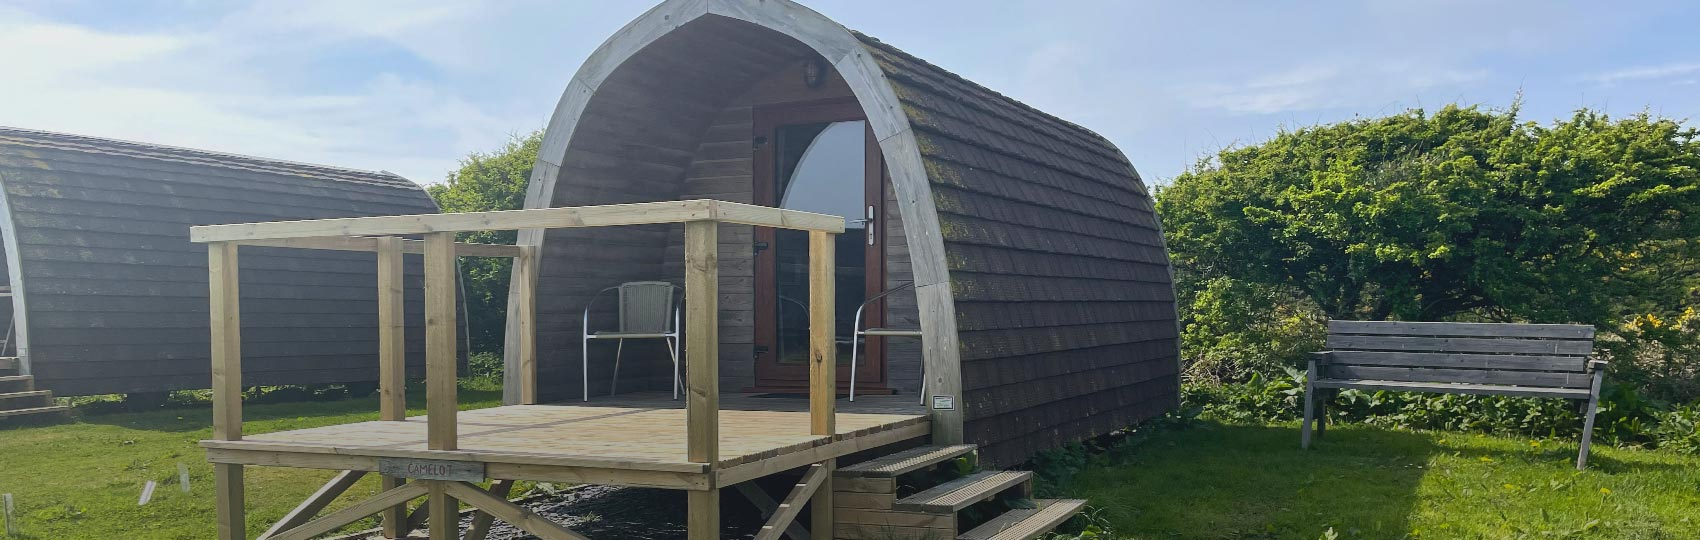 Lady relaxing in the porch of a glamping Pod on North Wales hill